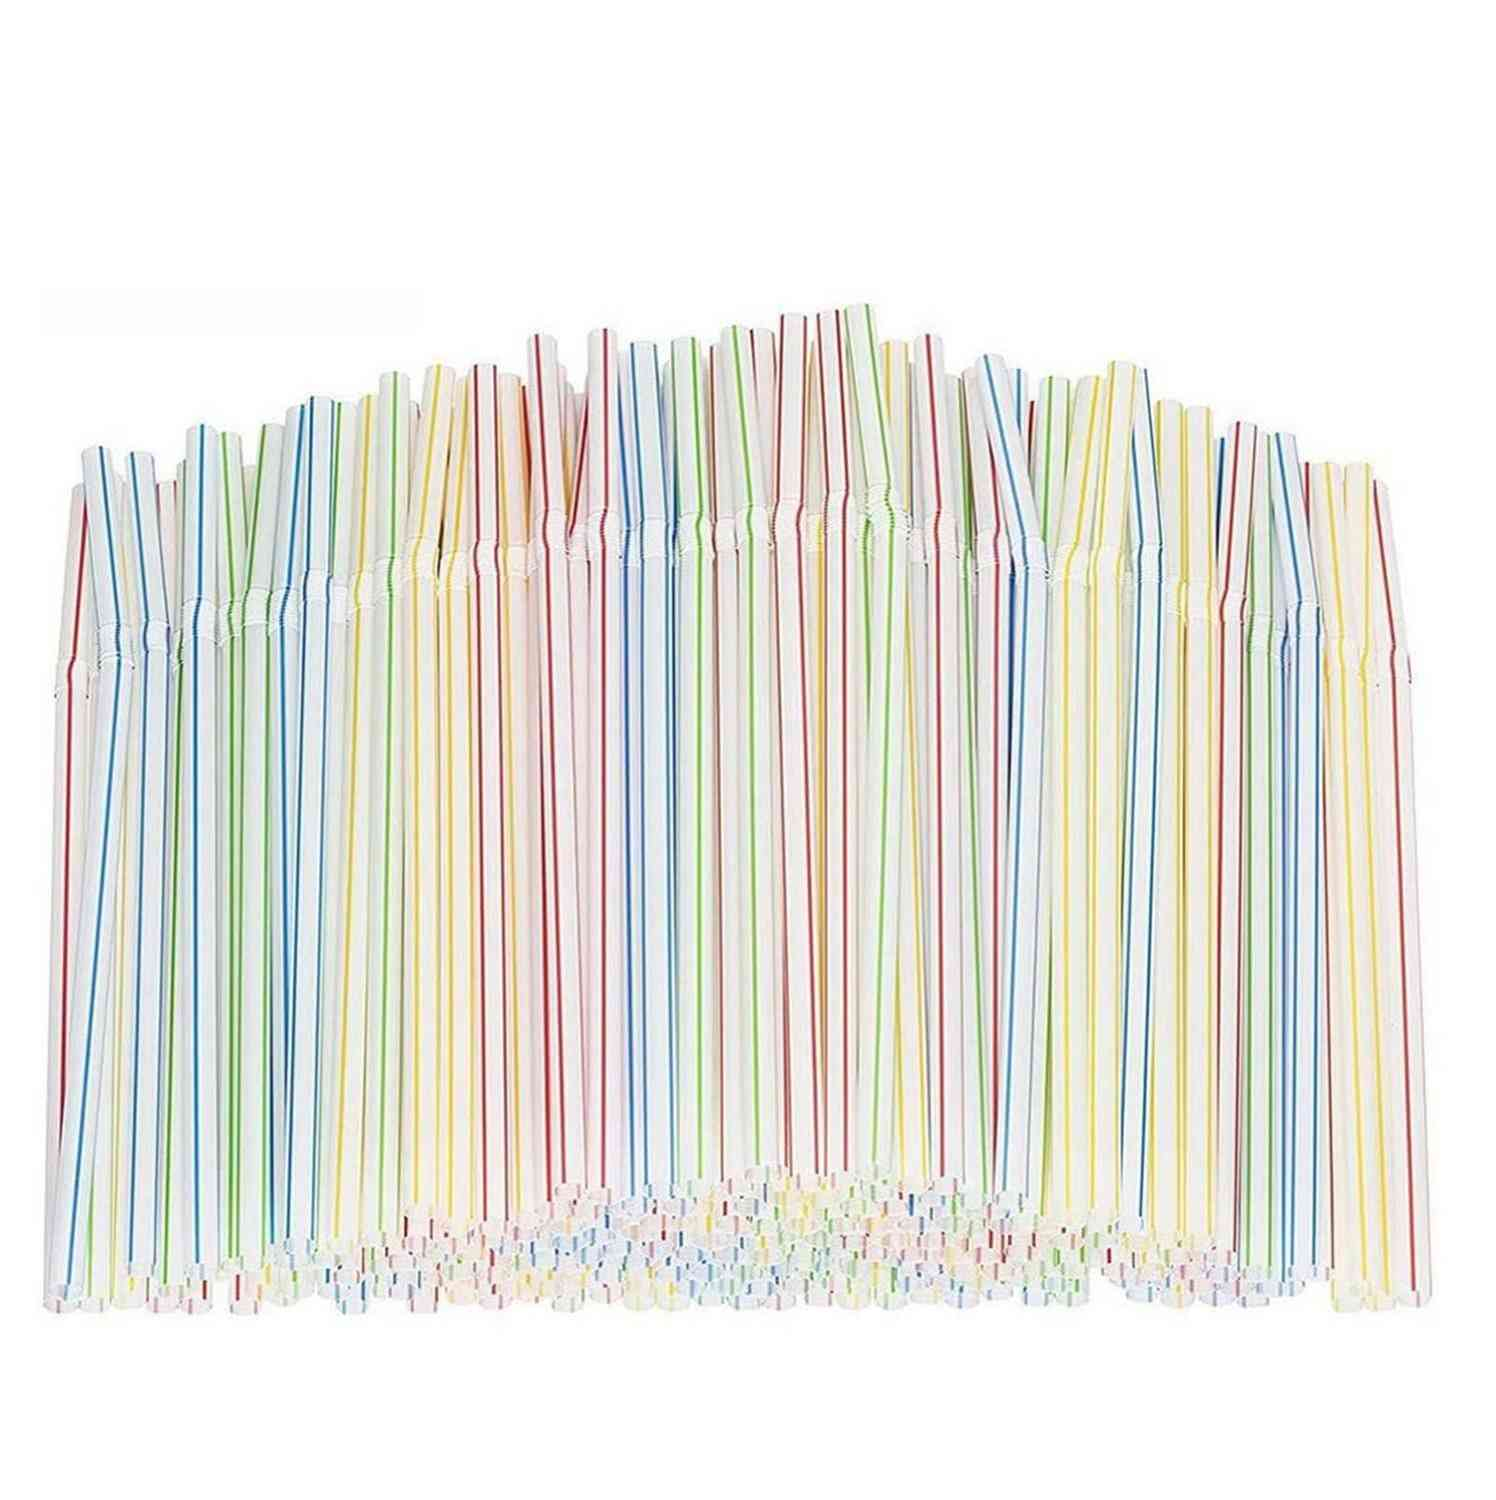 Plastic Drinking Straws 8 Inches Long Multi-colored Disposable Straws